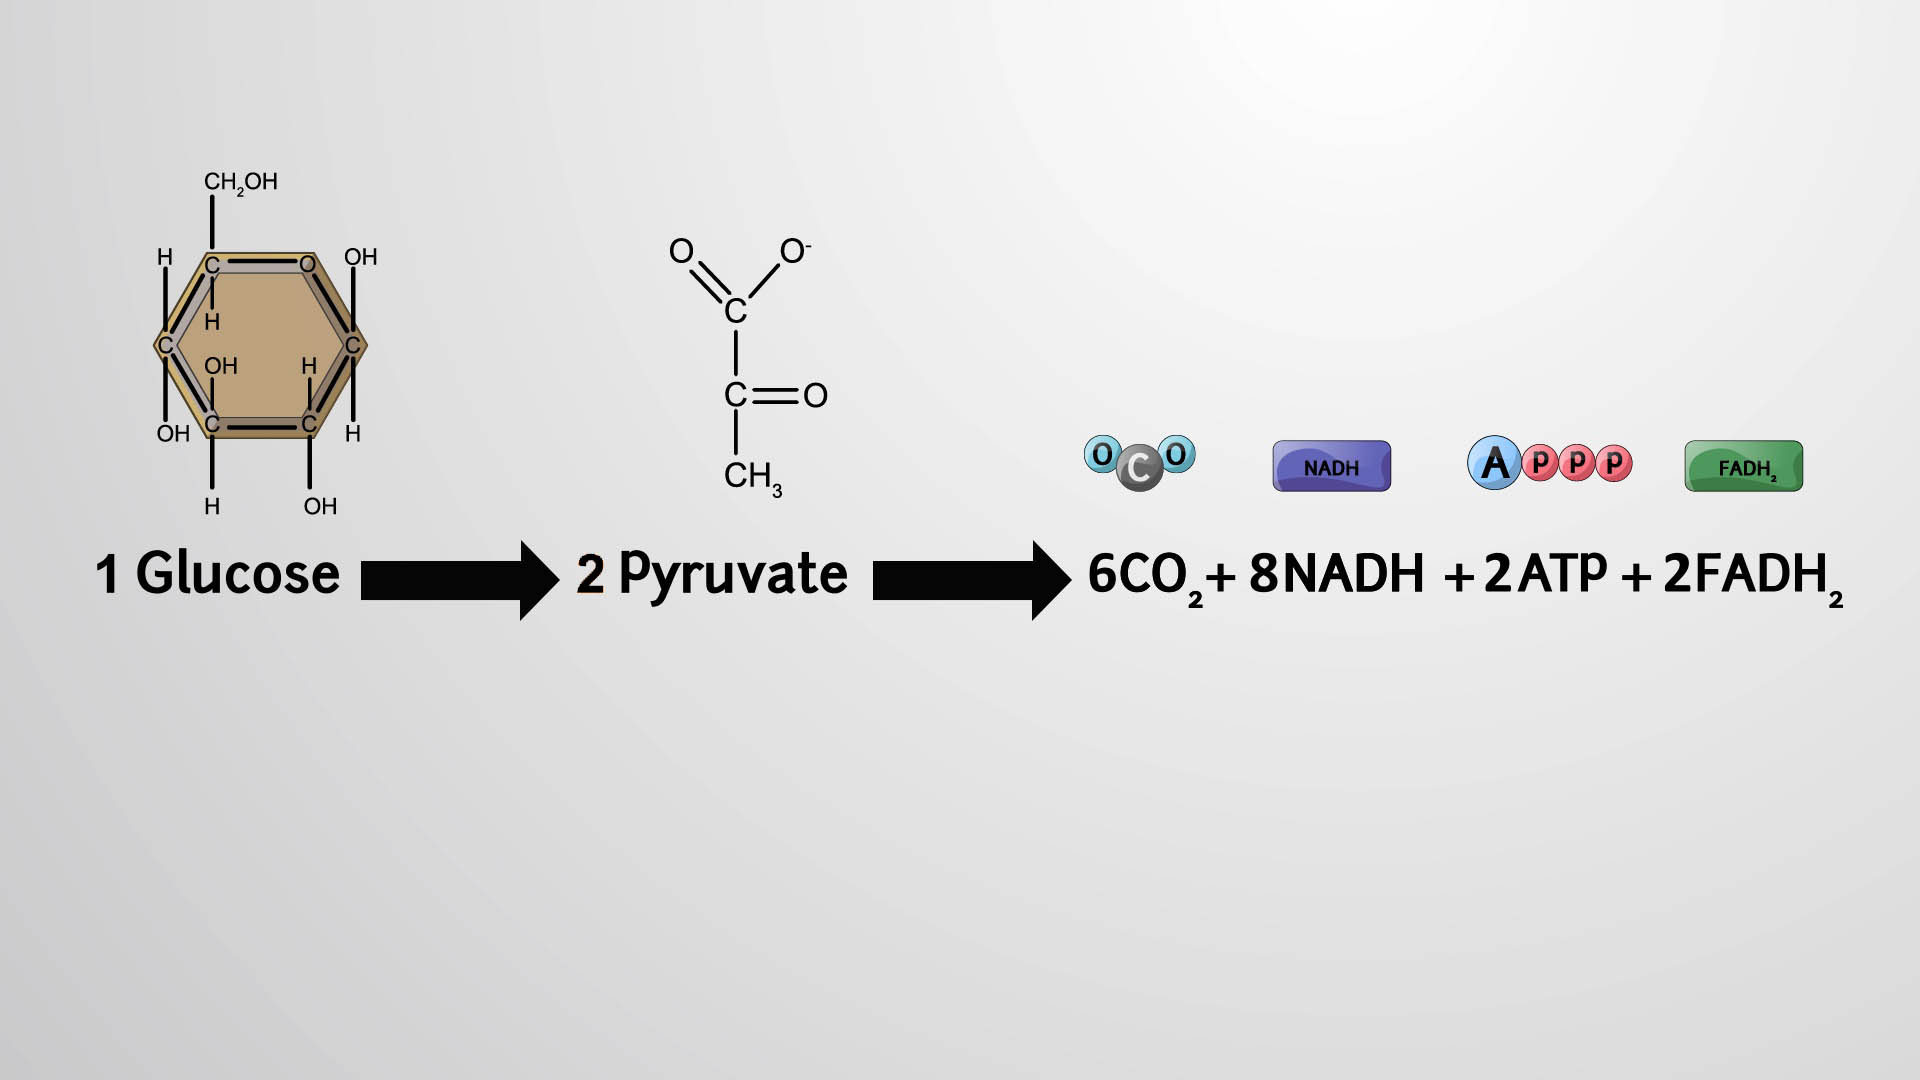 Products of the Citric Acid Cycle